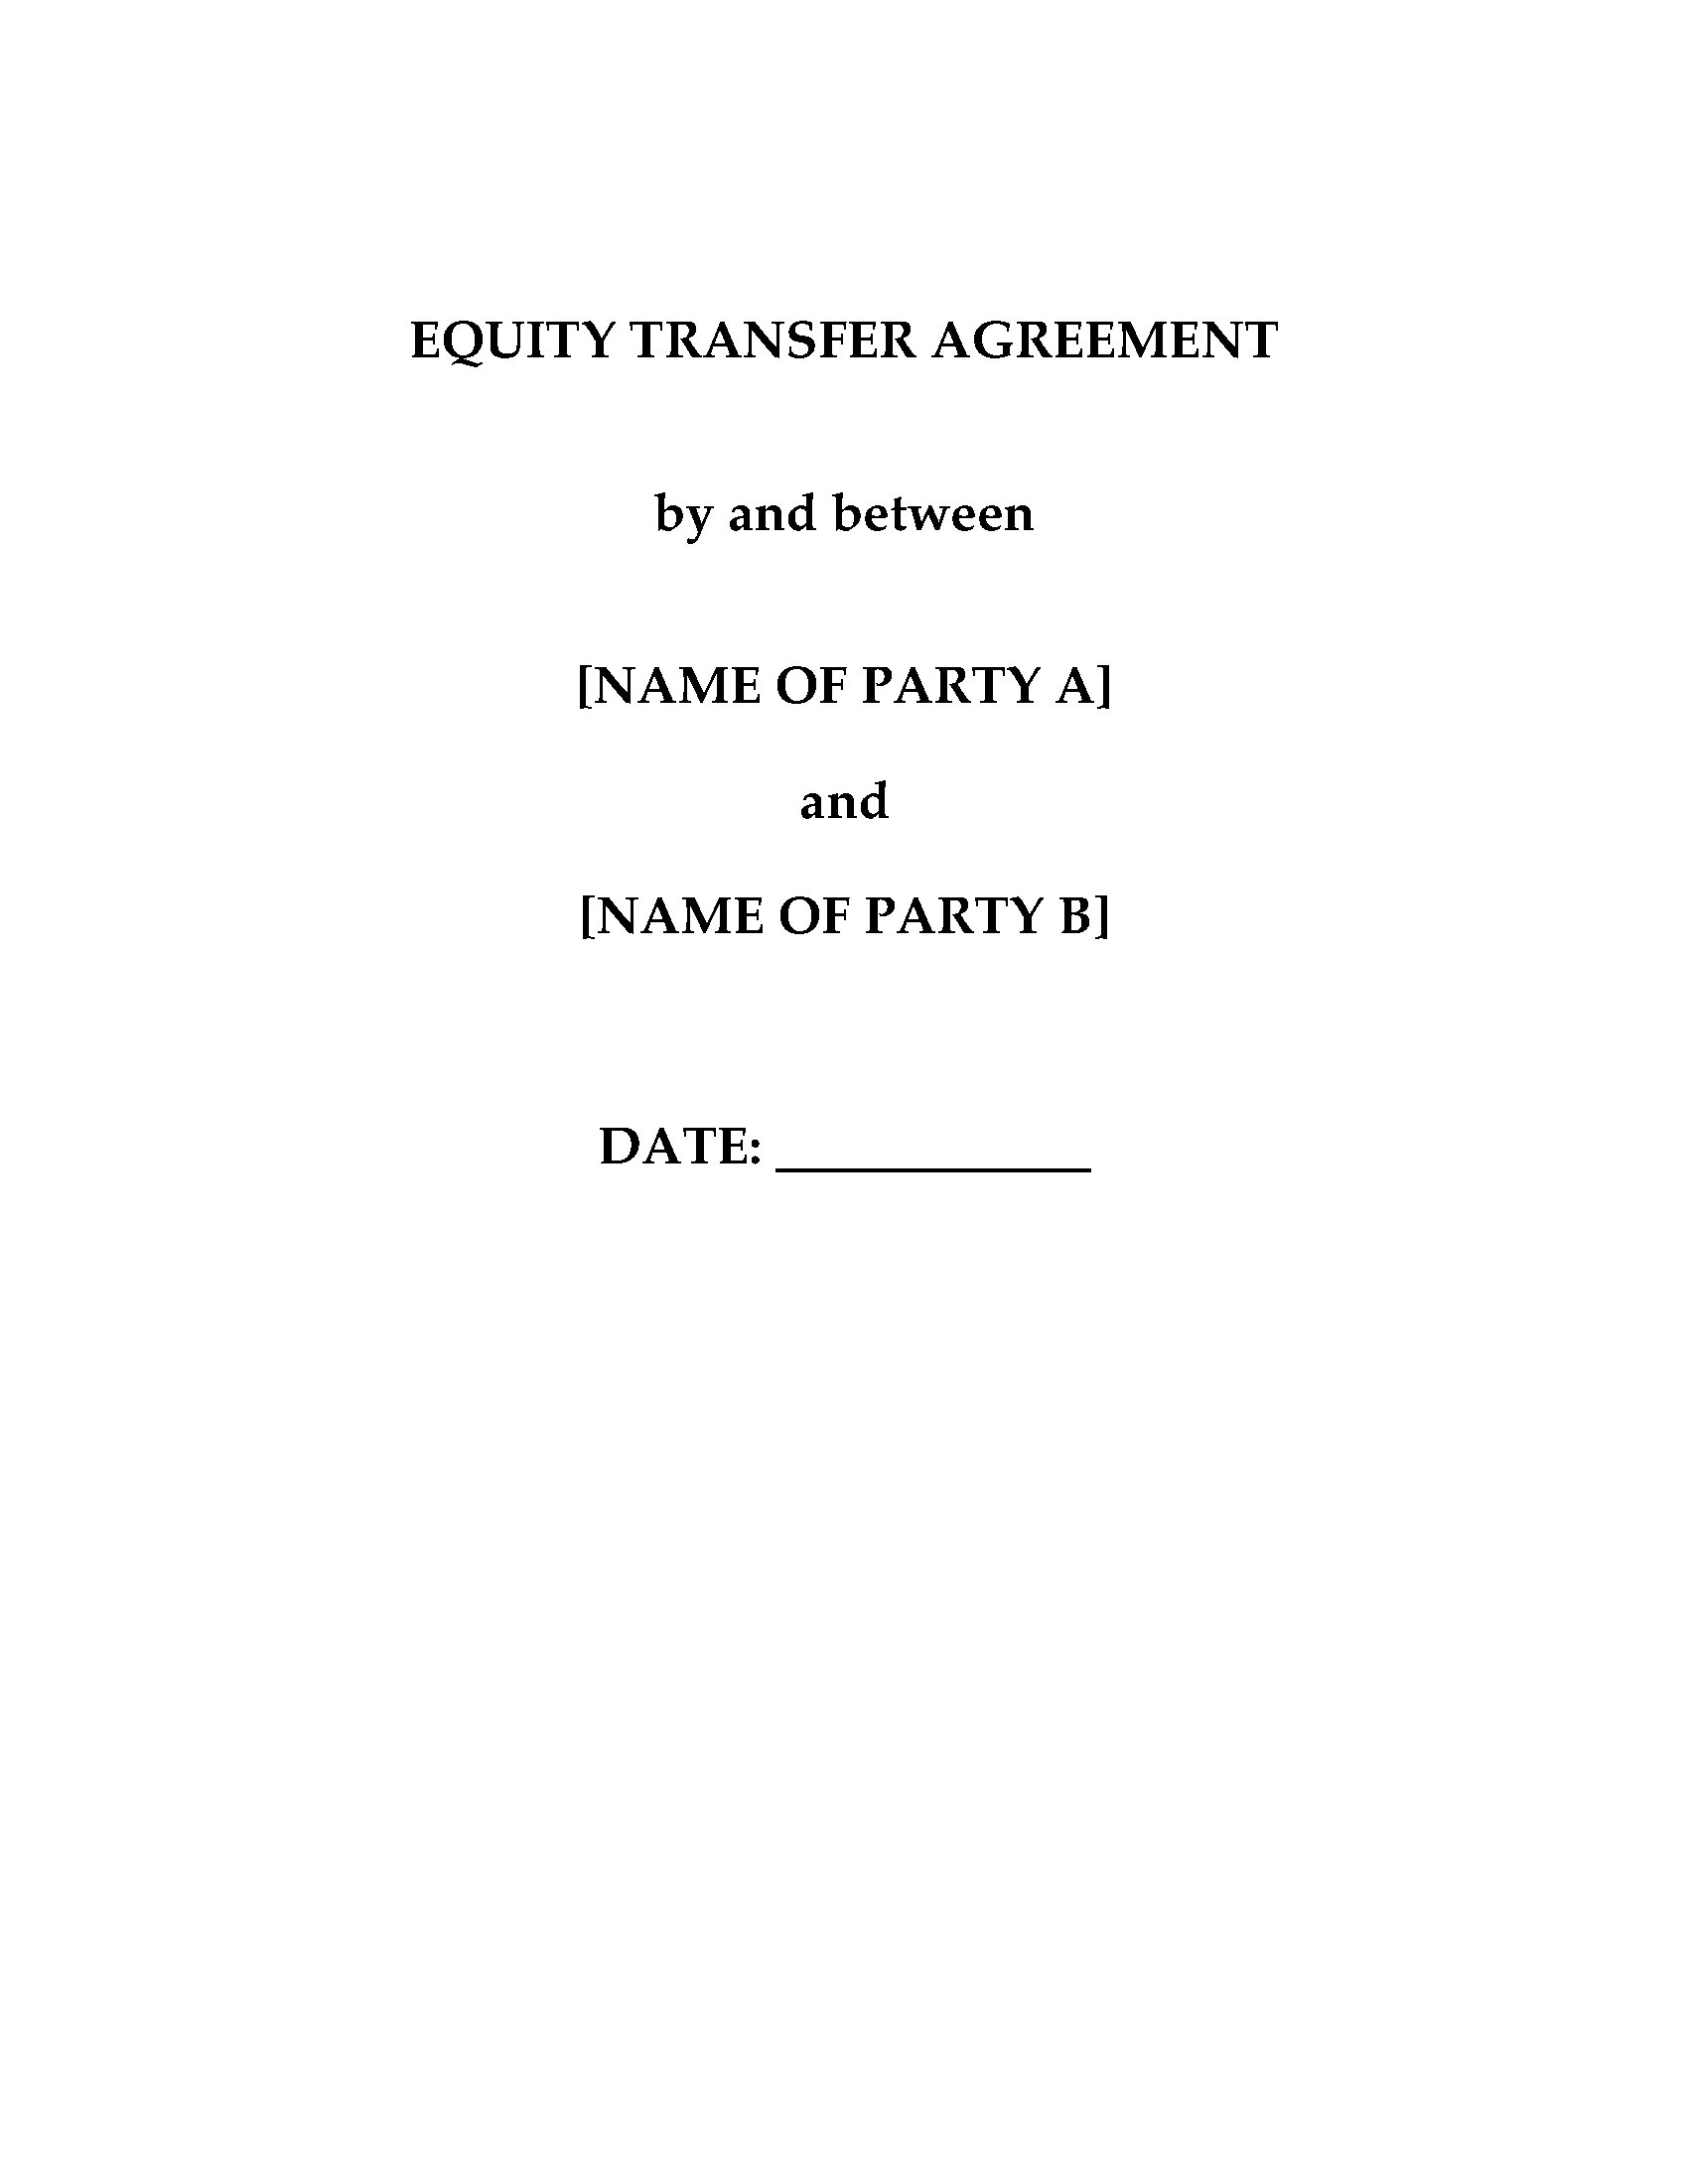 China Equity Transfer Agreement – Business Transfer Agreement